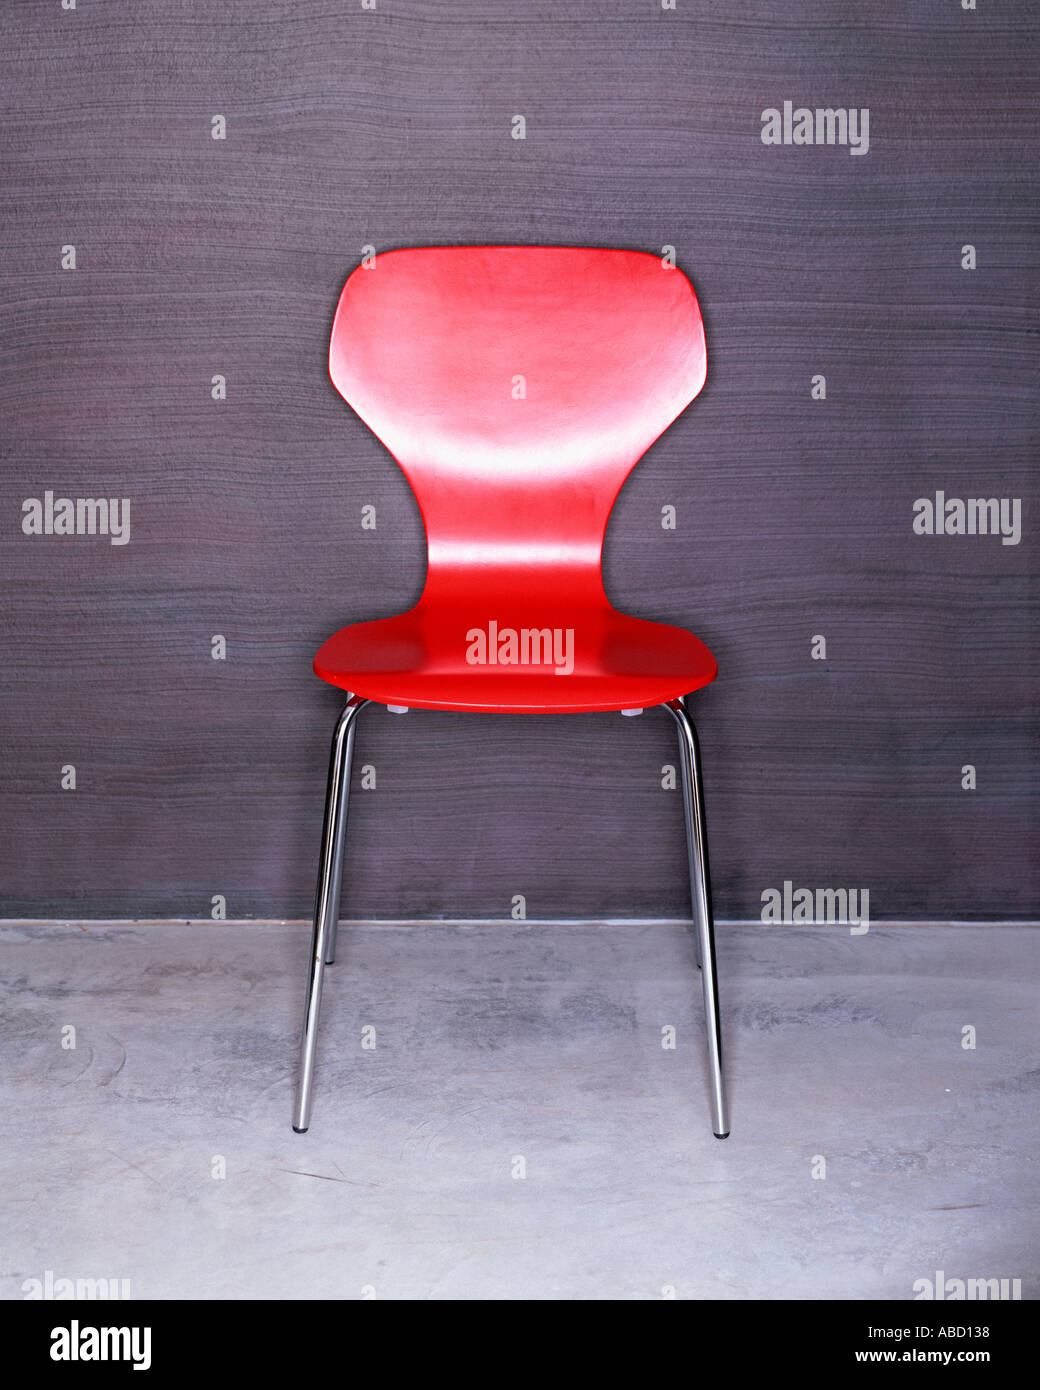 A trendy red chair - Stock Image